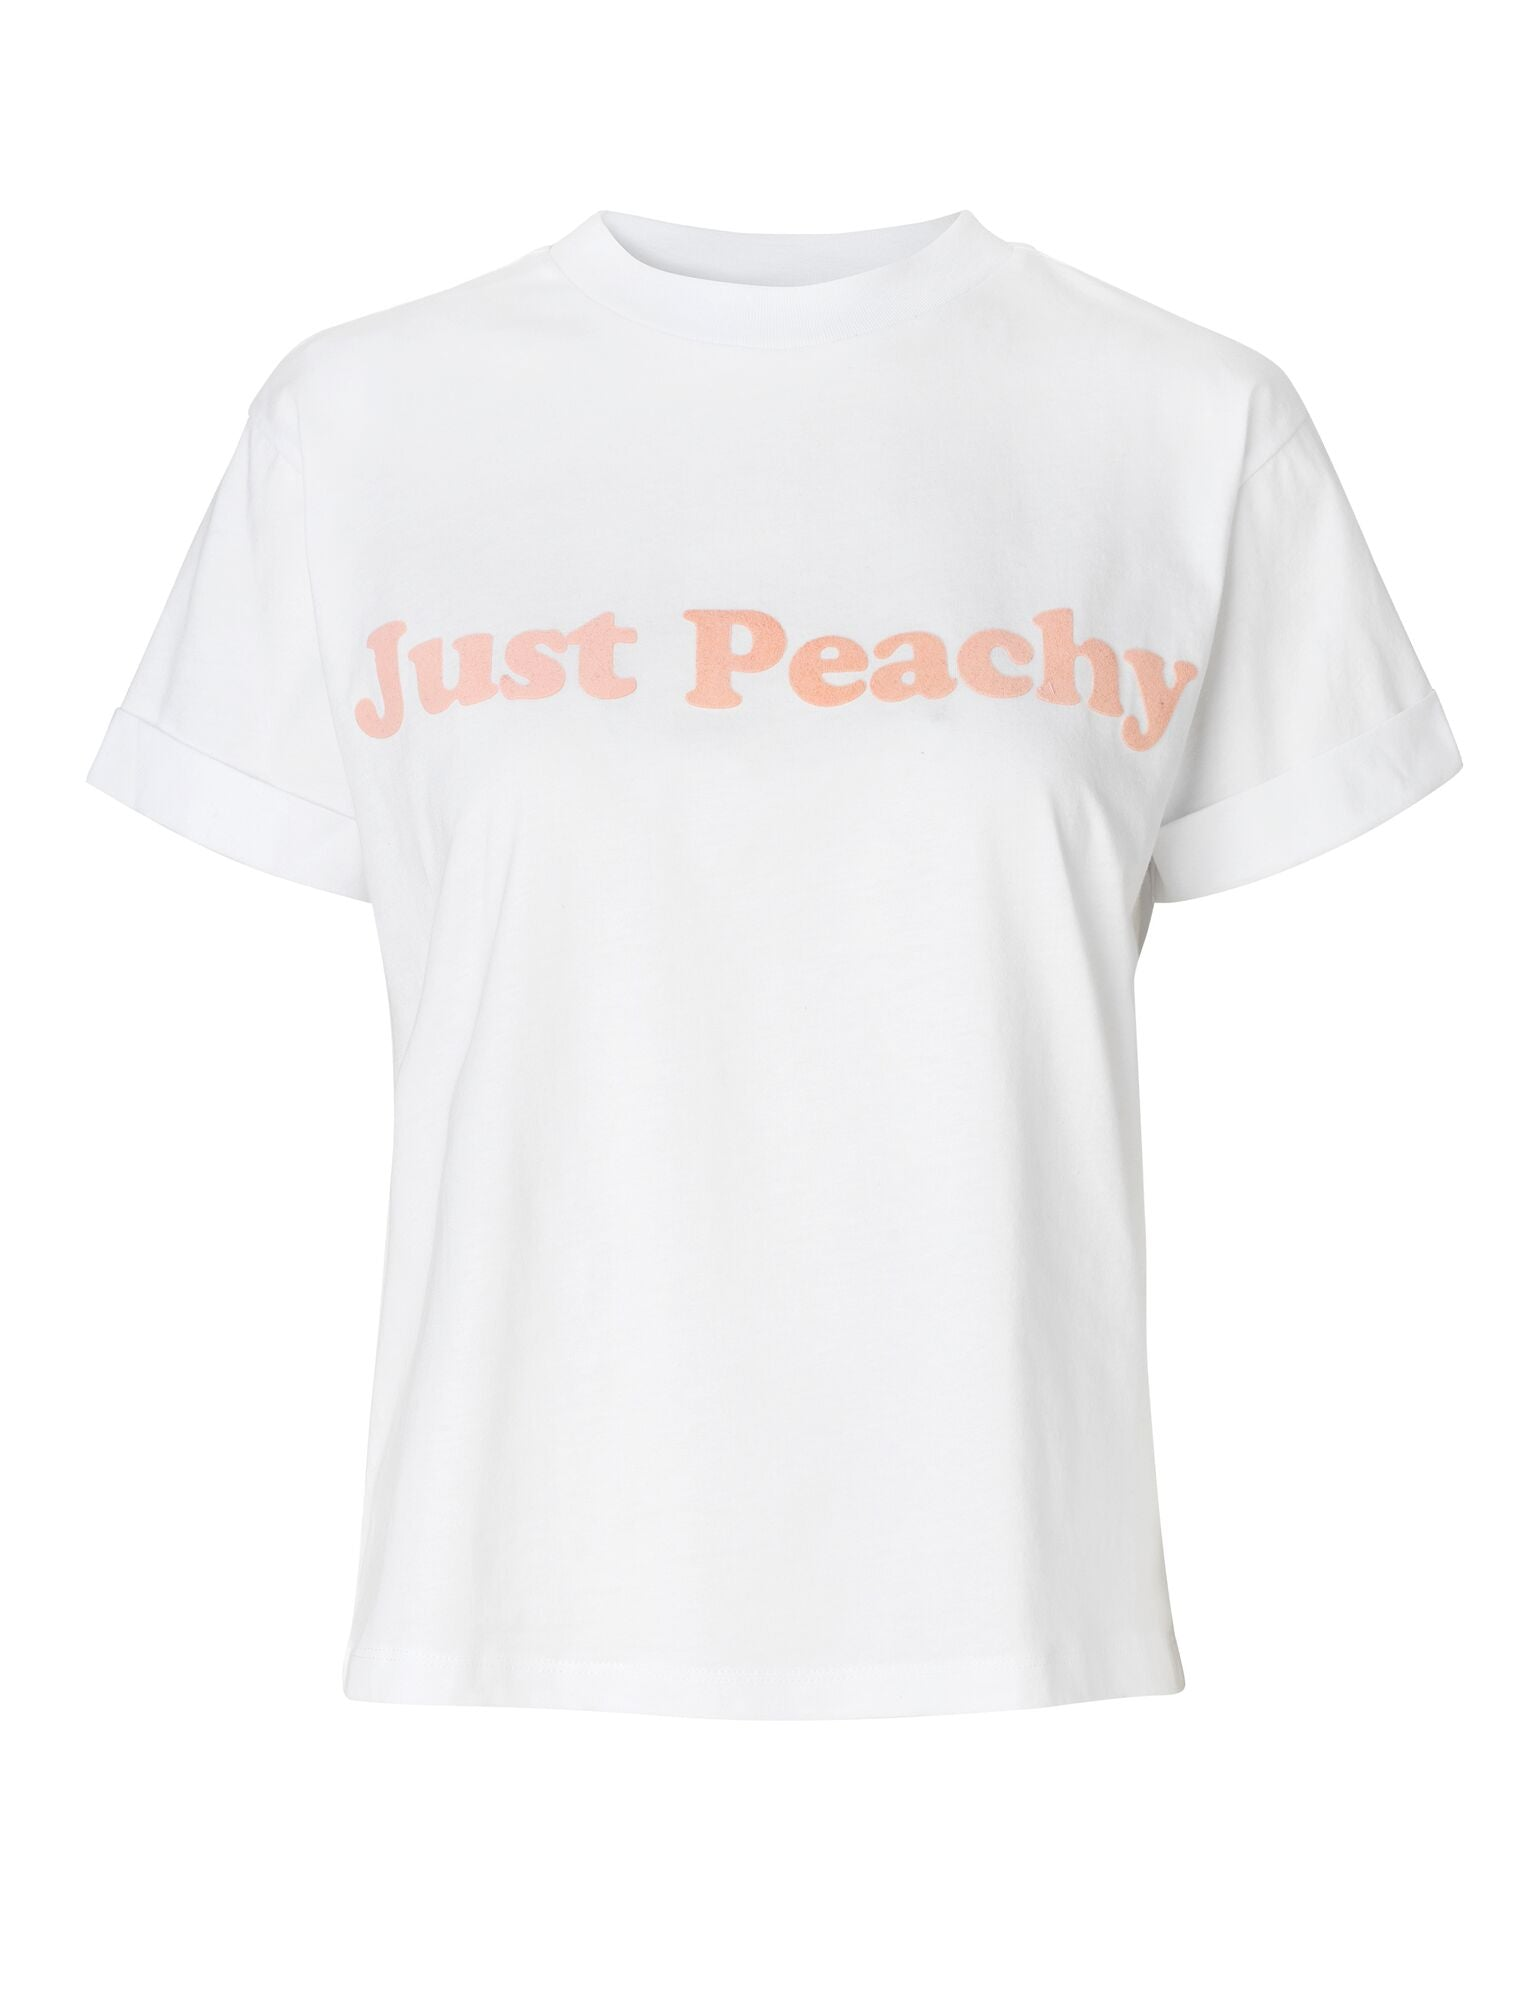 T-shirt Just Peachy - Blanc